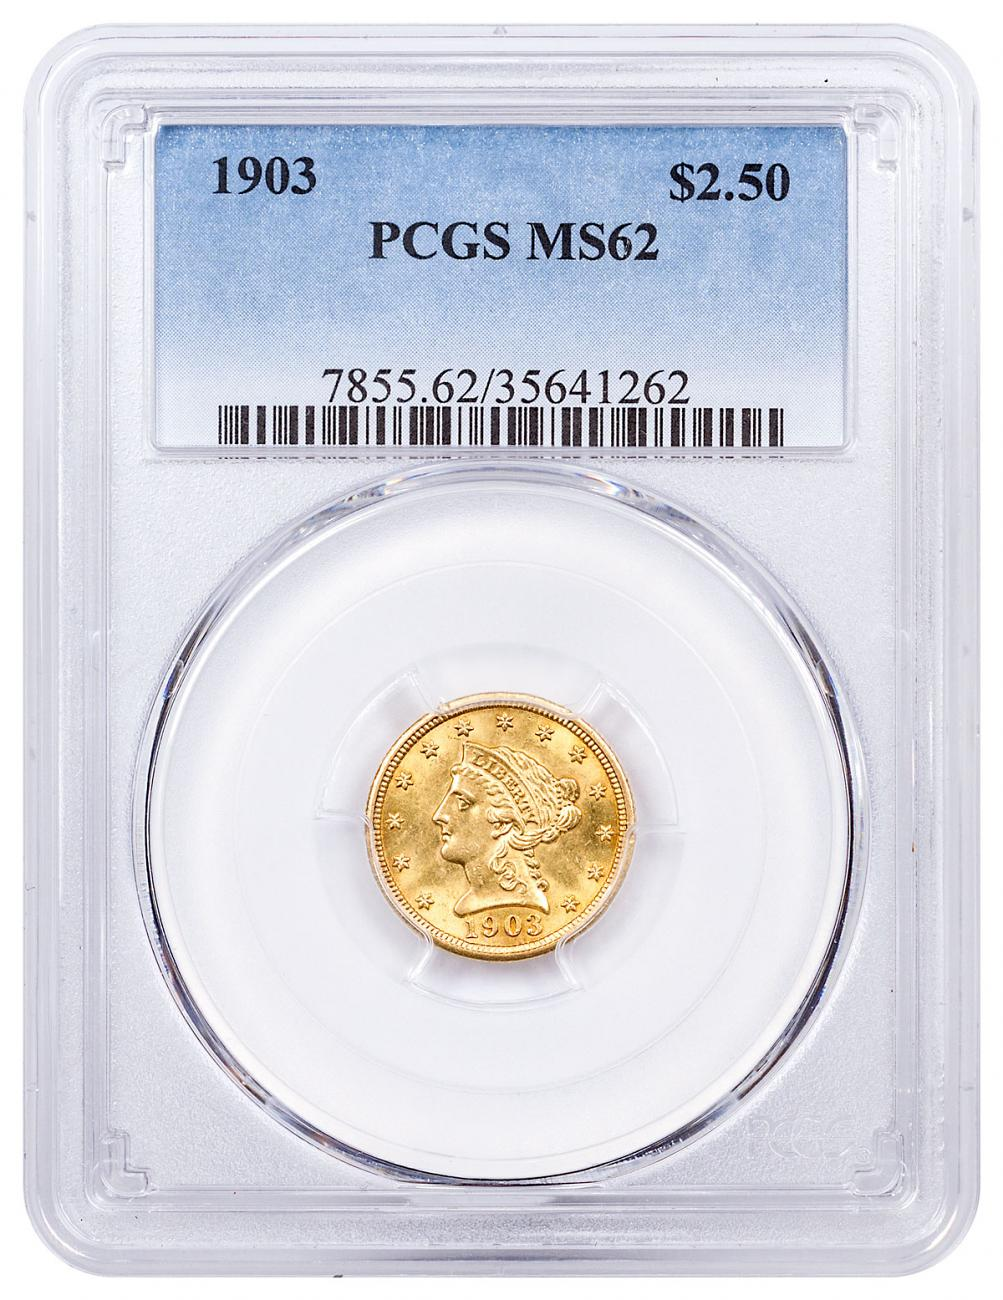 1903 Liberty Head $2.5 Gold Quarter Eagle Coronet PCGS MS62